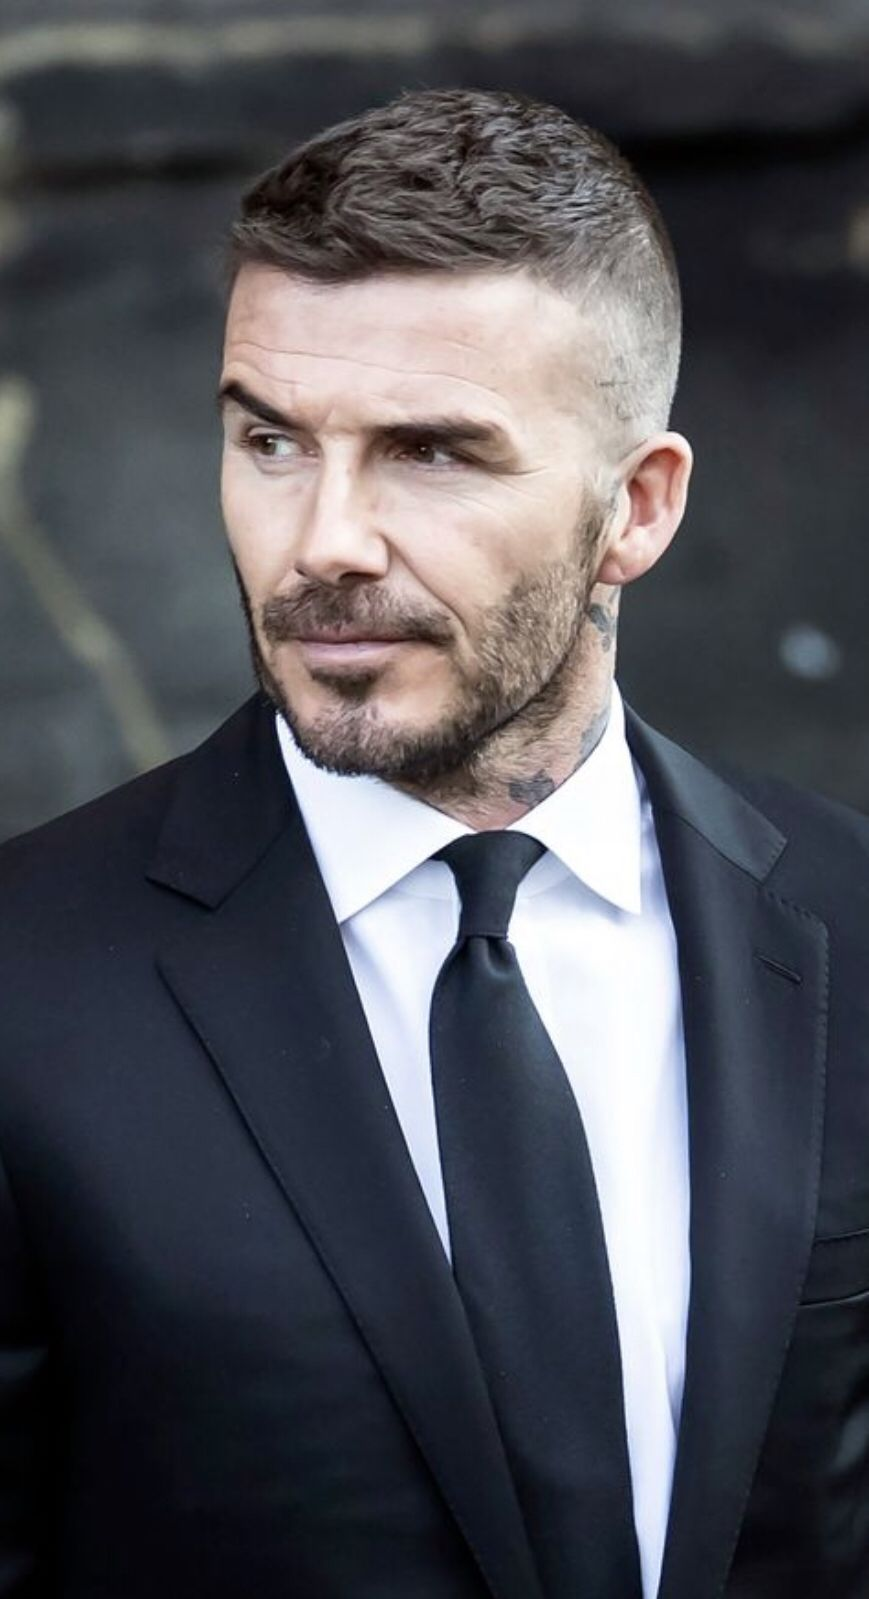 Pin By Waltermann On David Beckham Mens Messy Hairstyles Beckham Haircut David Beckham Haircut